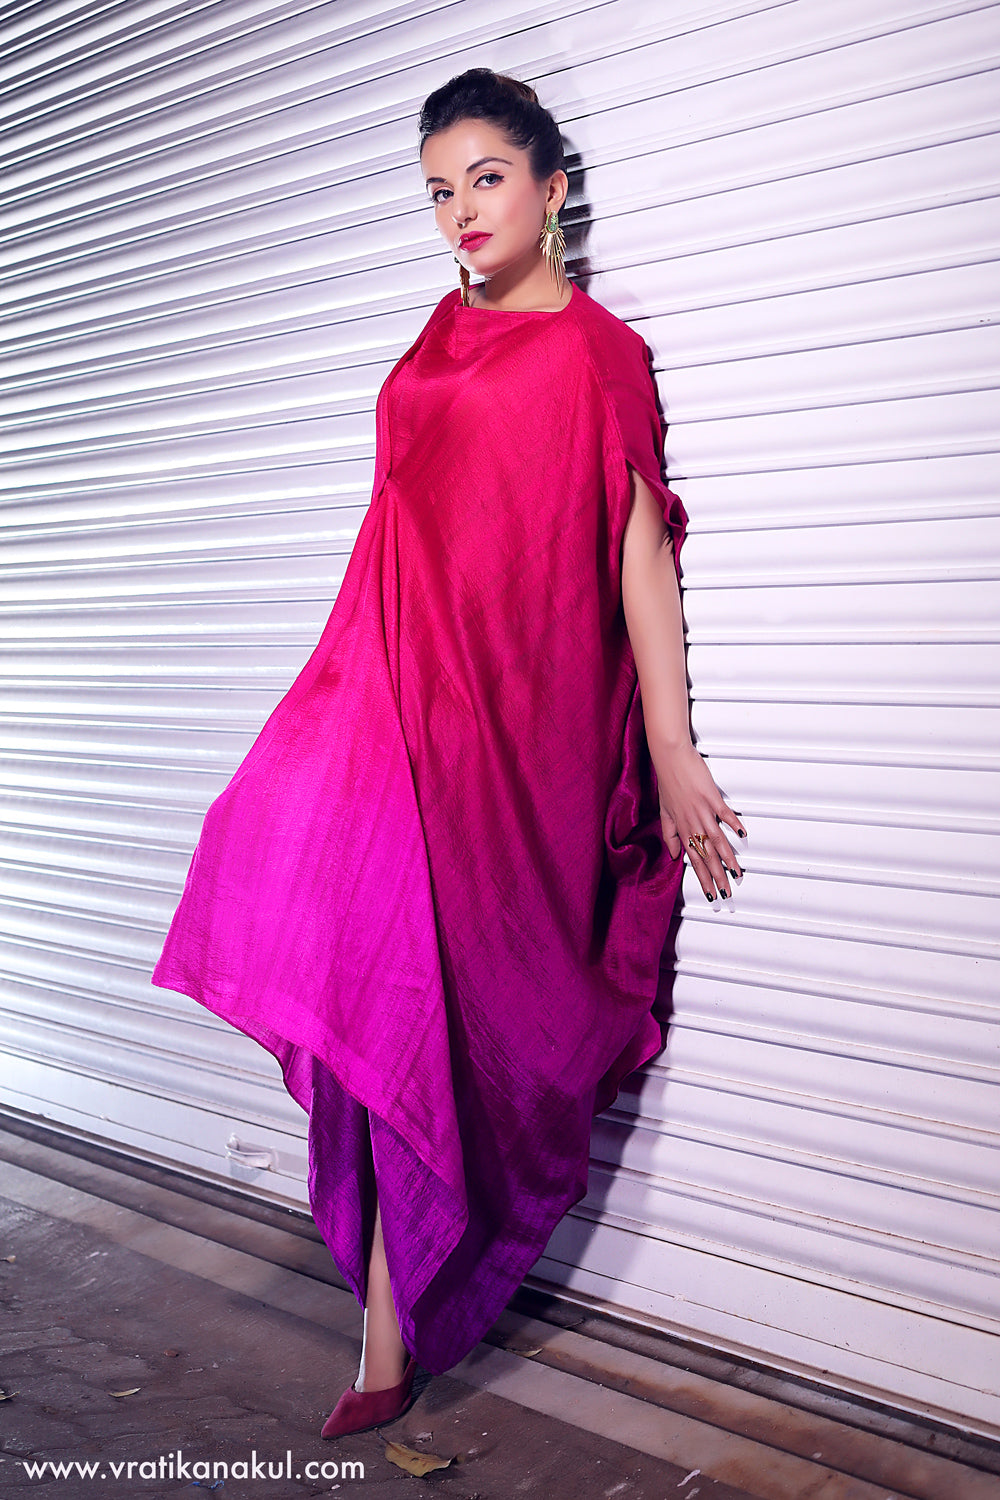 Pink Gradient Draped Fusion Dress - Western - vratikanakul.com